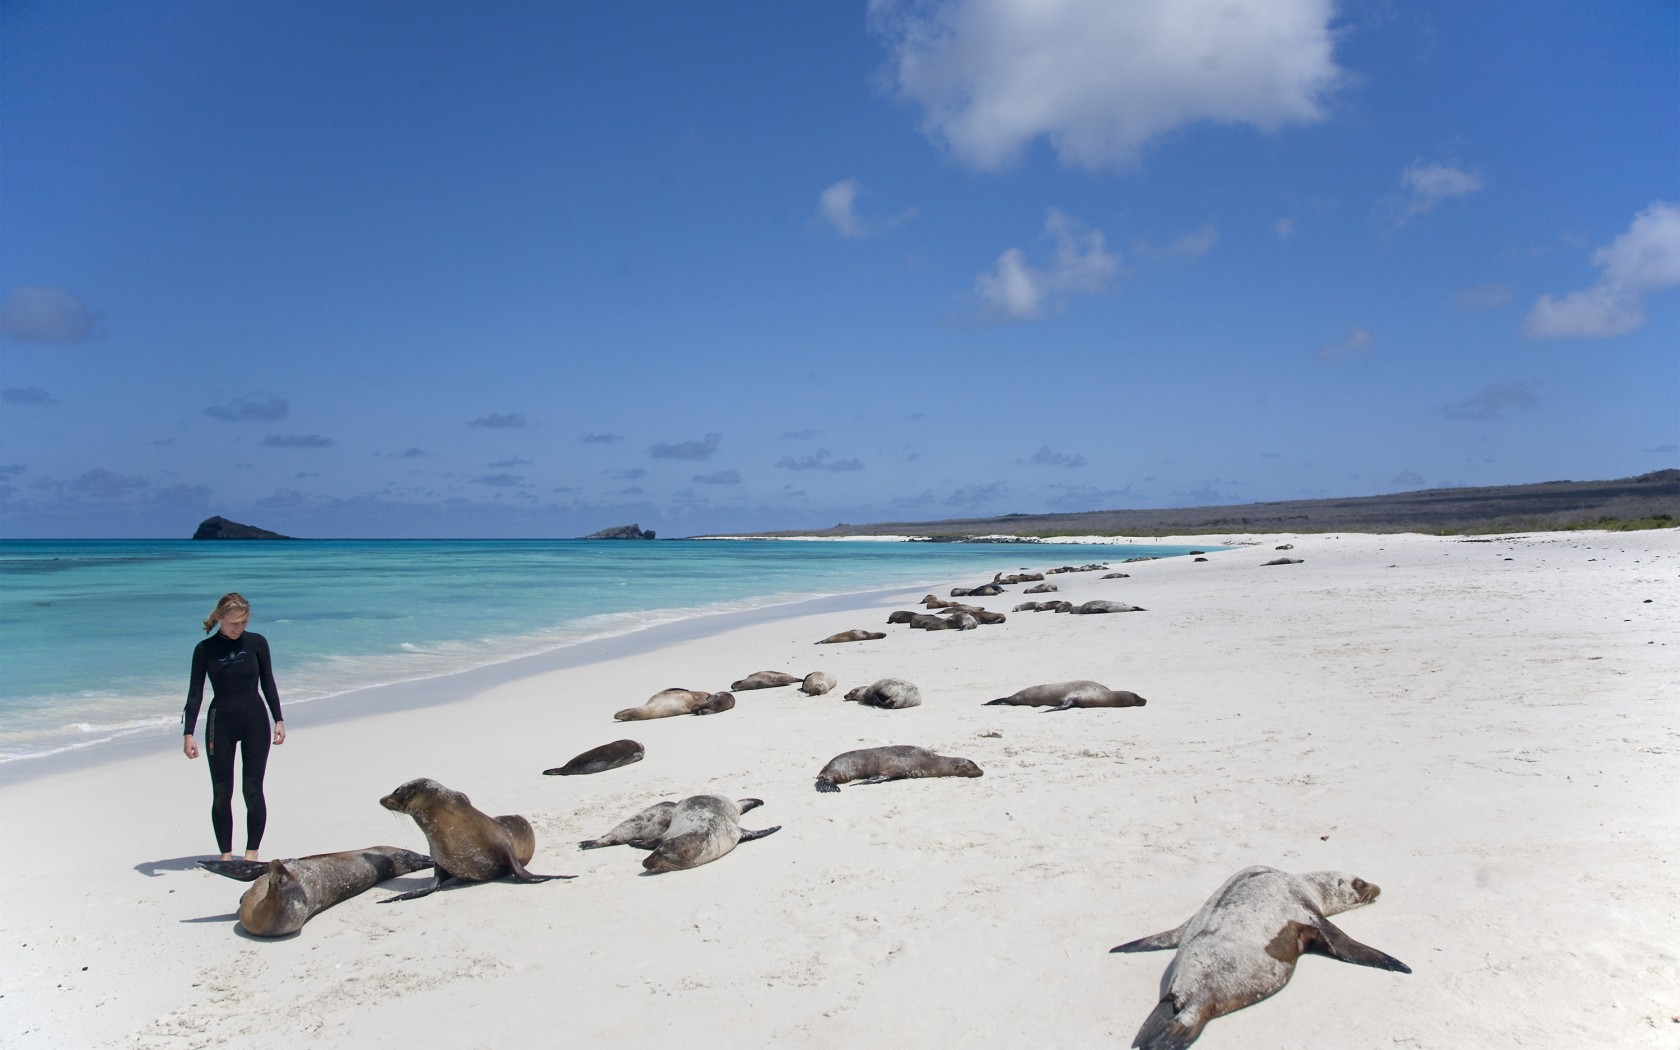 17Overs-Galapagos-Islands-AWL_GAL0165-1680x1050